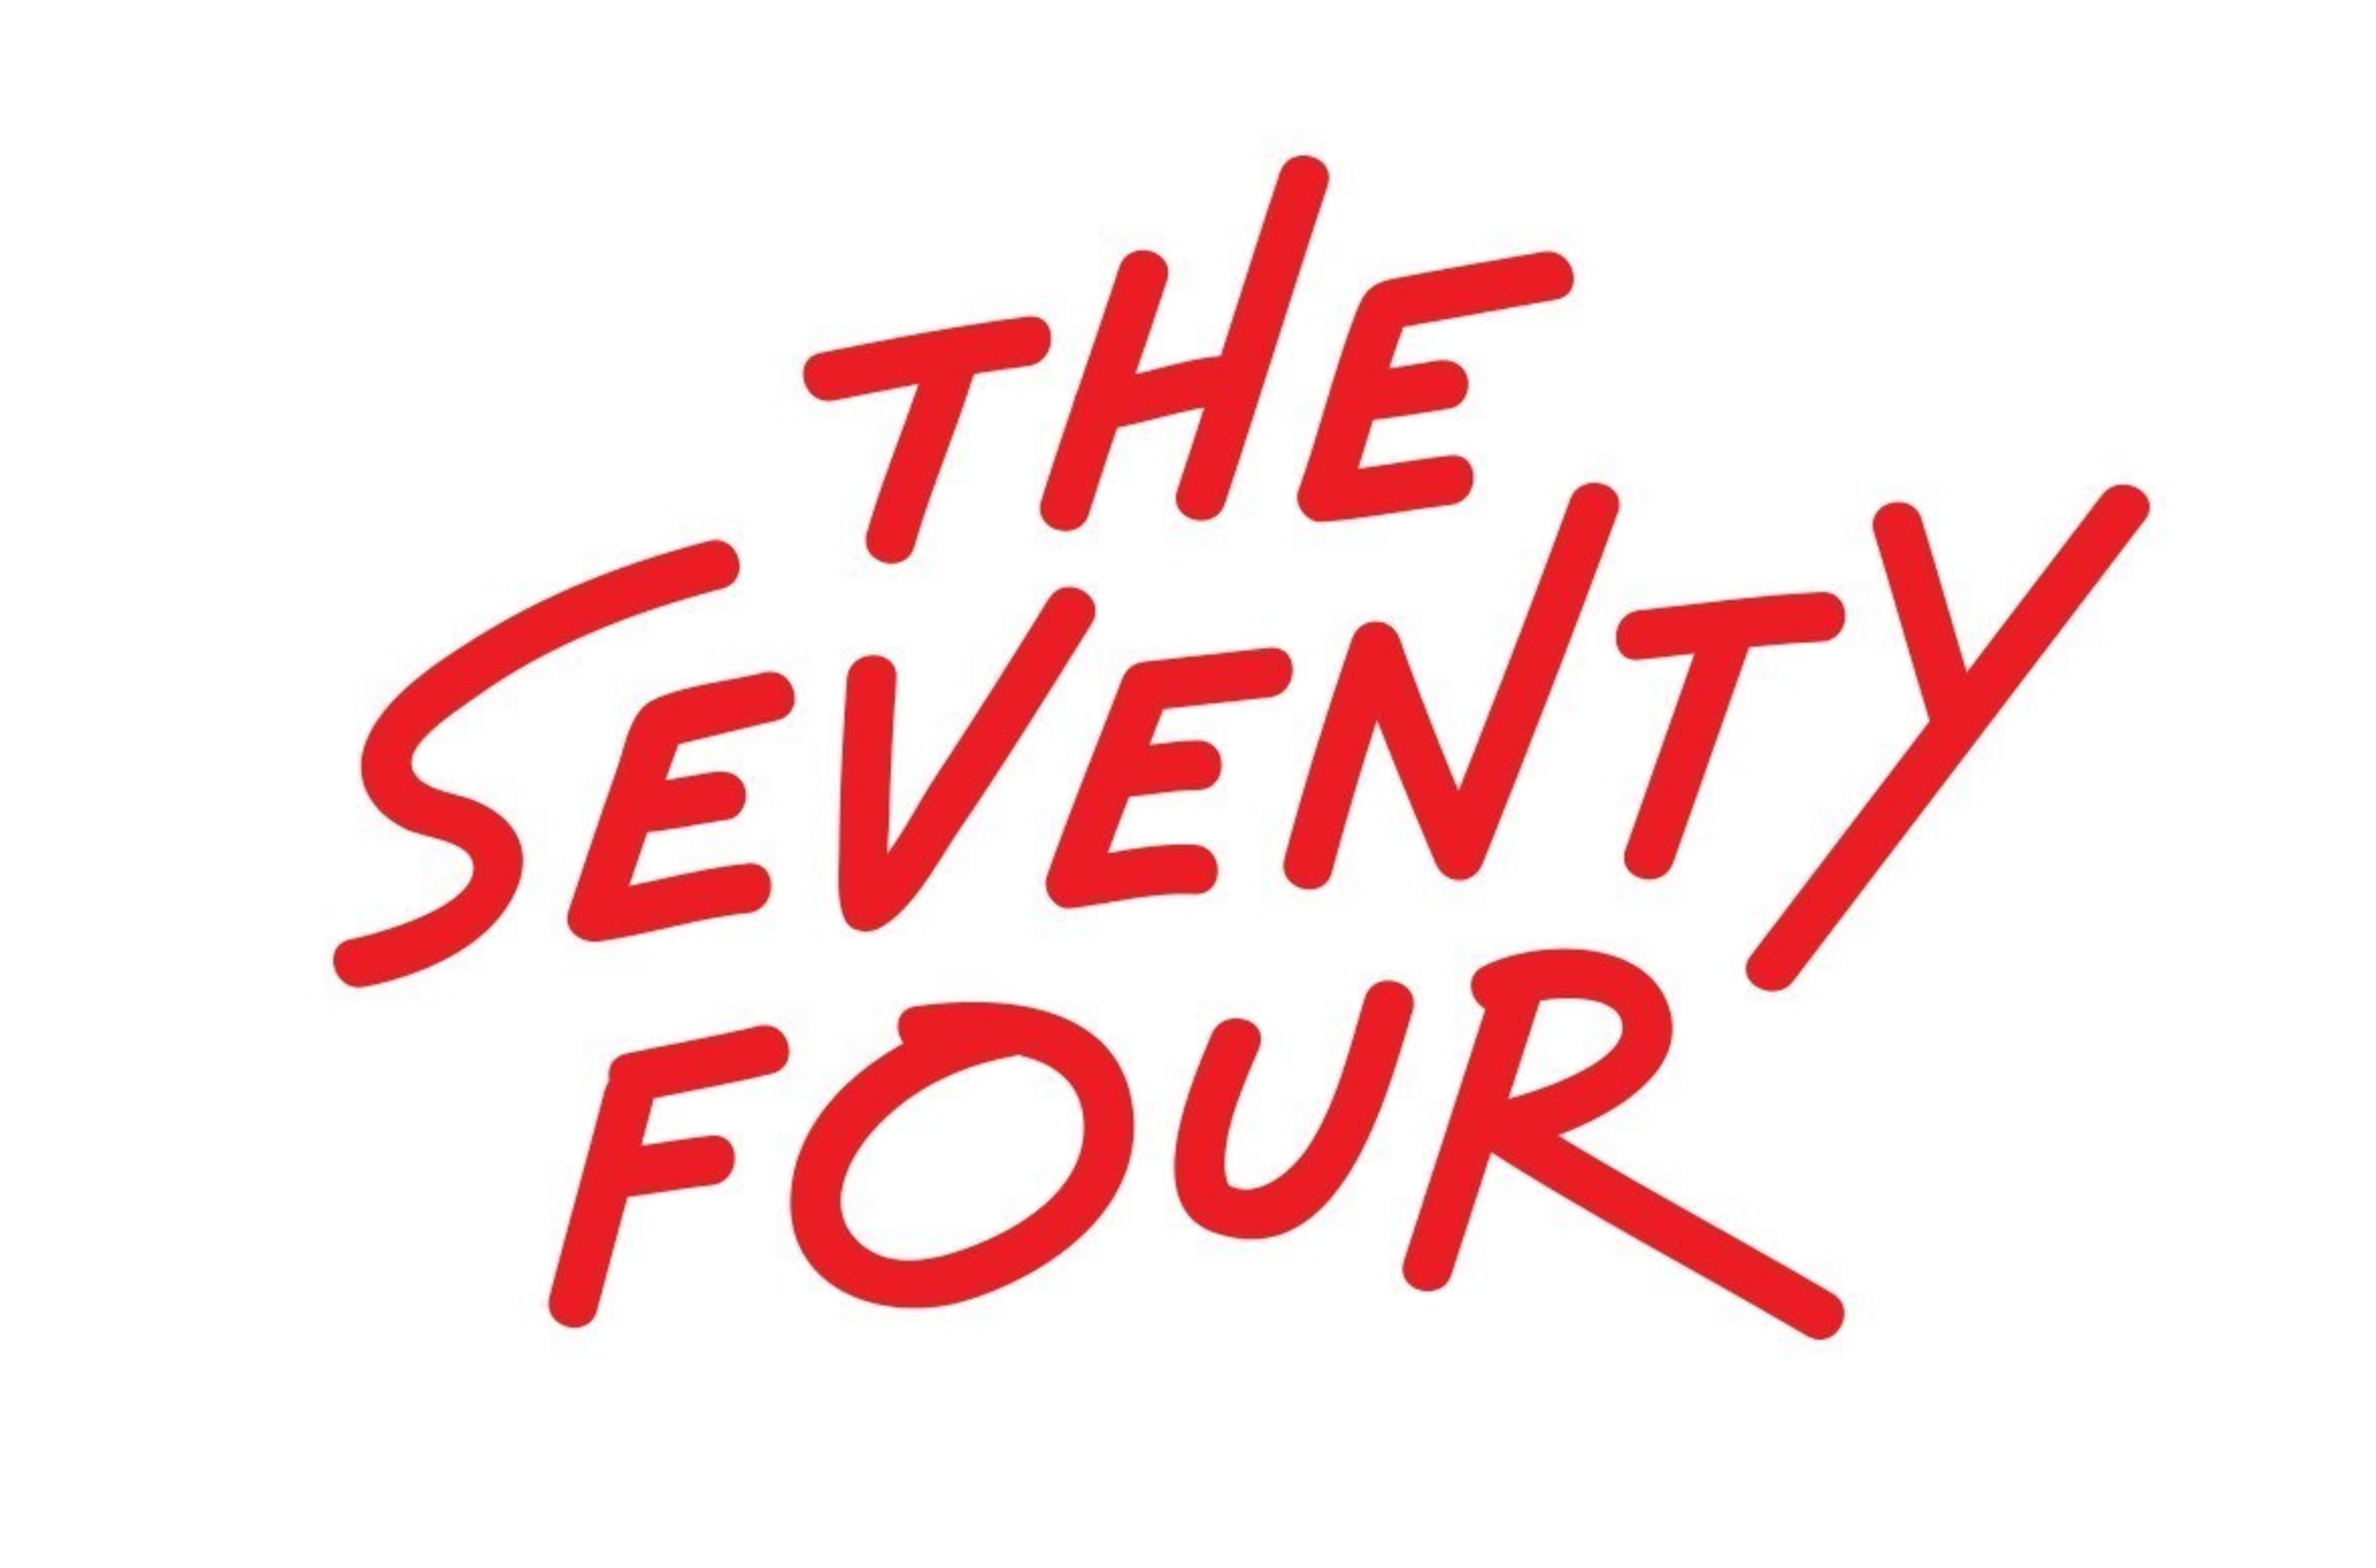 Education News Sites The Seventy Four and LA School Report Announce Partnership to Expand Coverage in Los Angeles